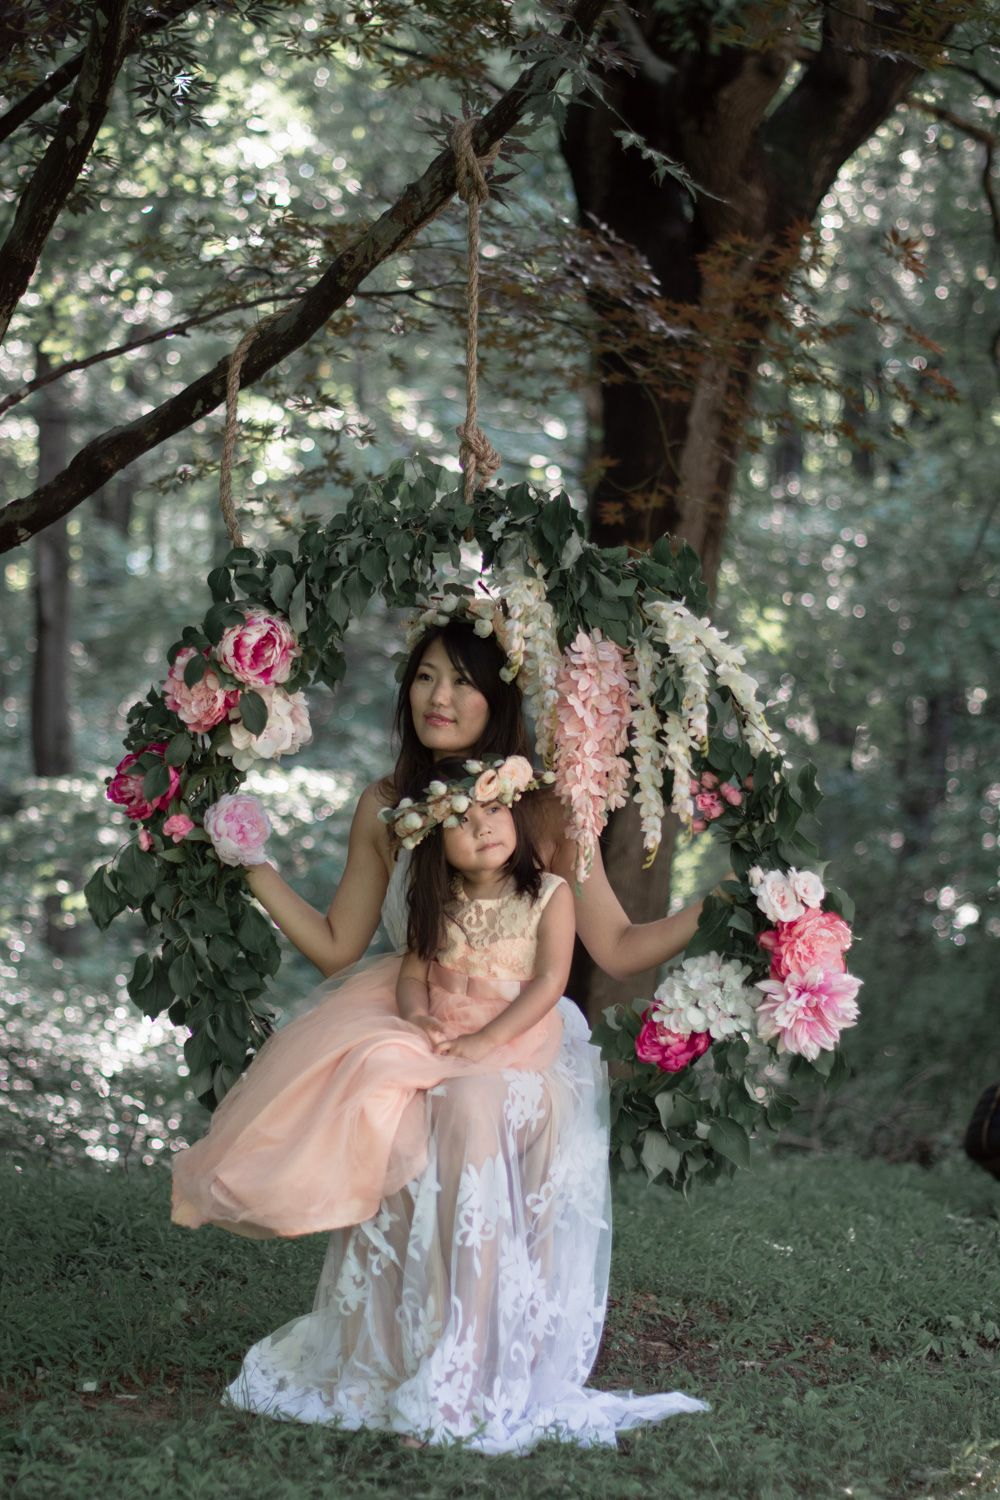 How to Build a Flower Swing for under 50 as a Photography